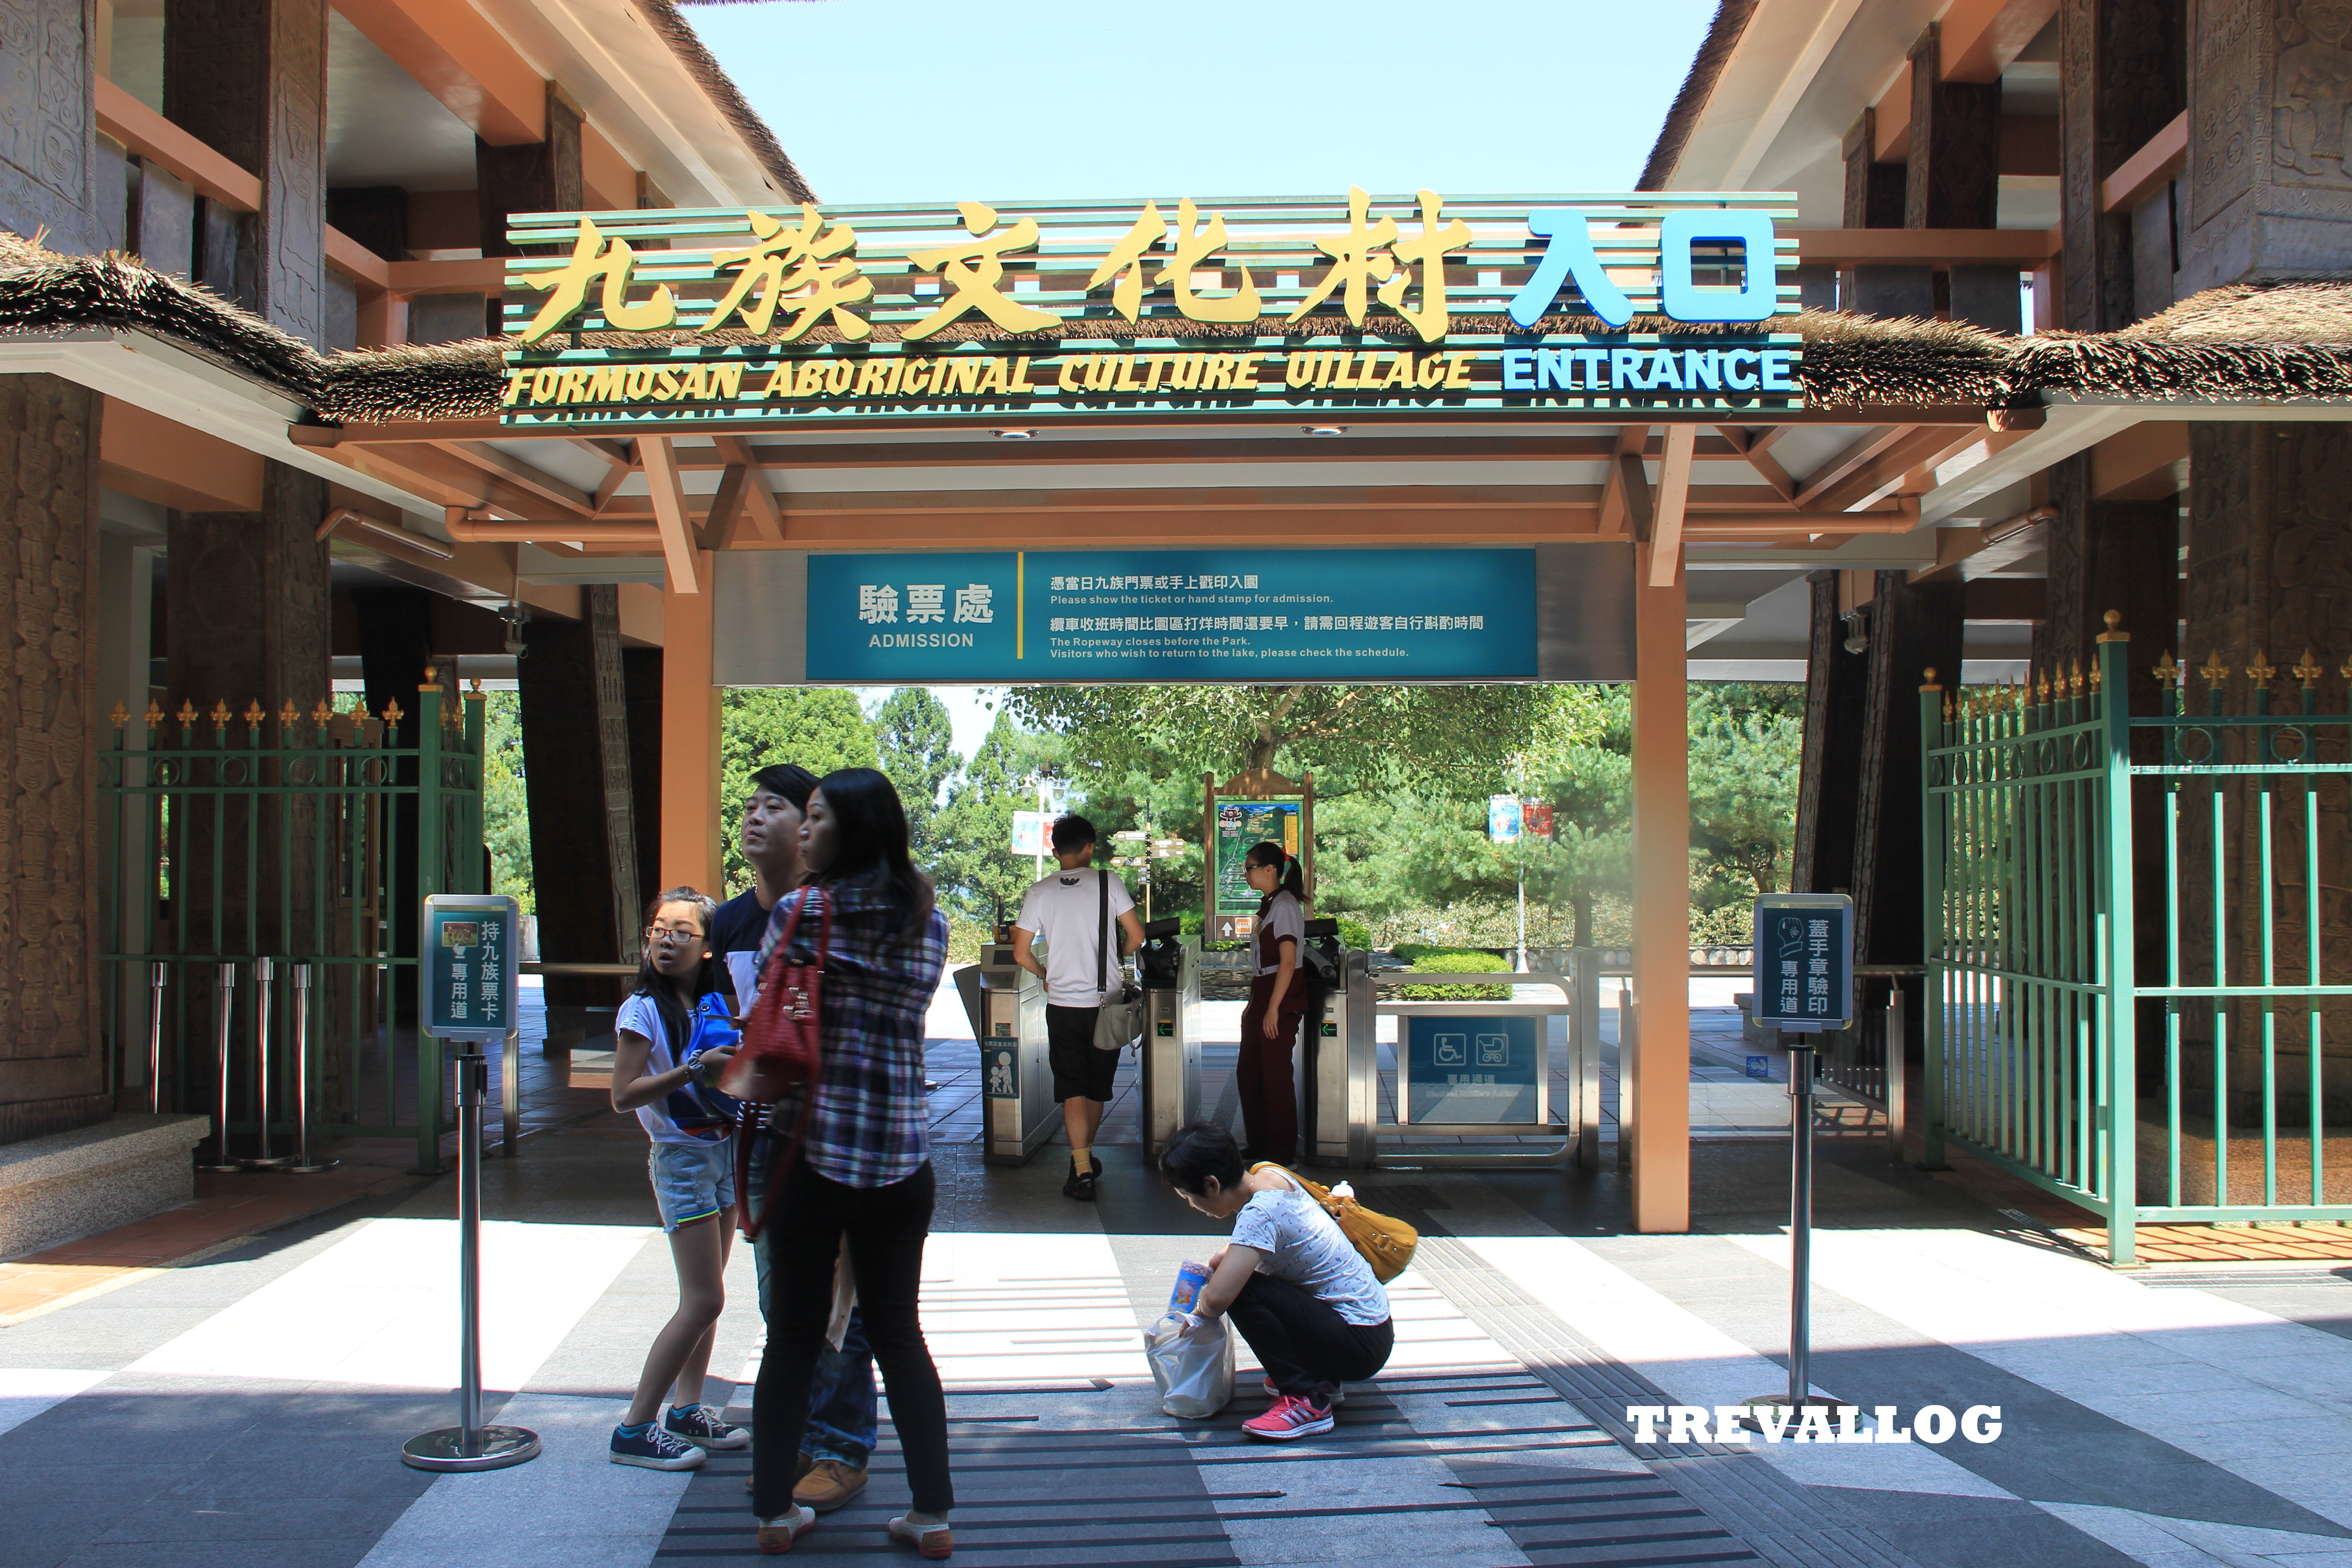 As said in the photo: Formosan Aboriginal Culture Village Entrance, Sun Moon Lake, Taiwan